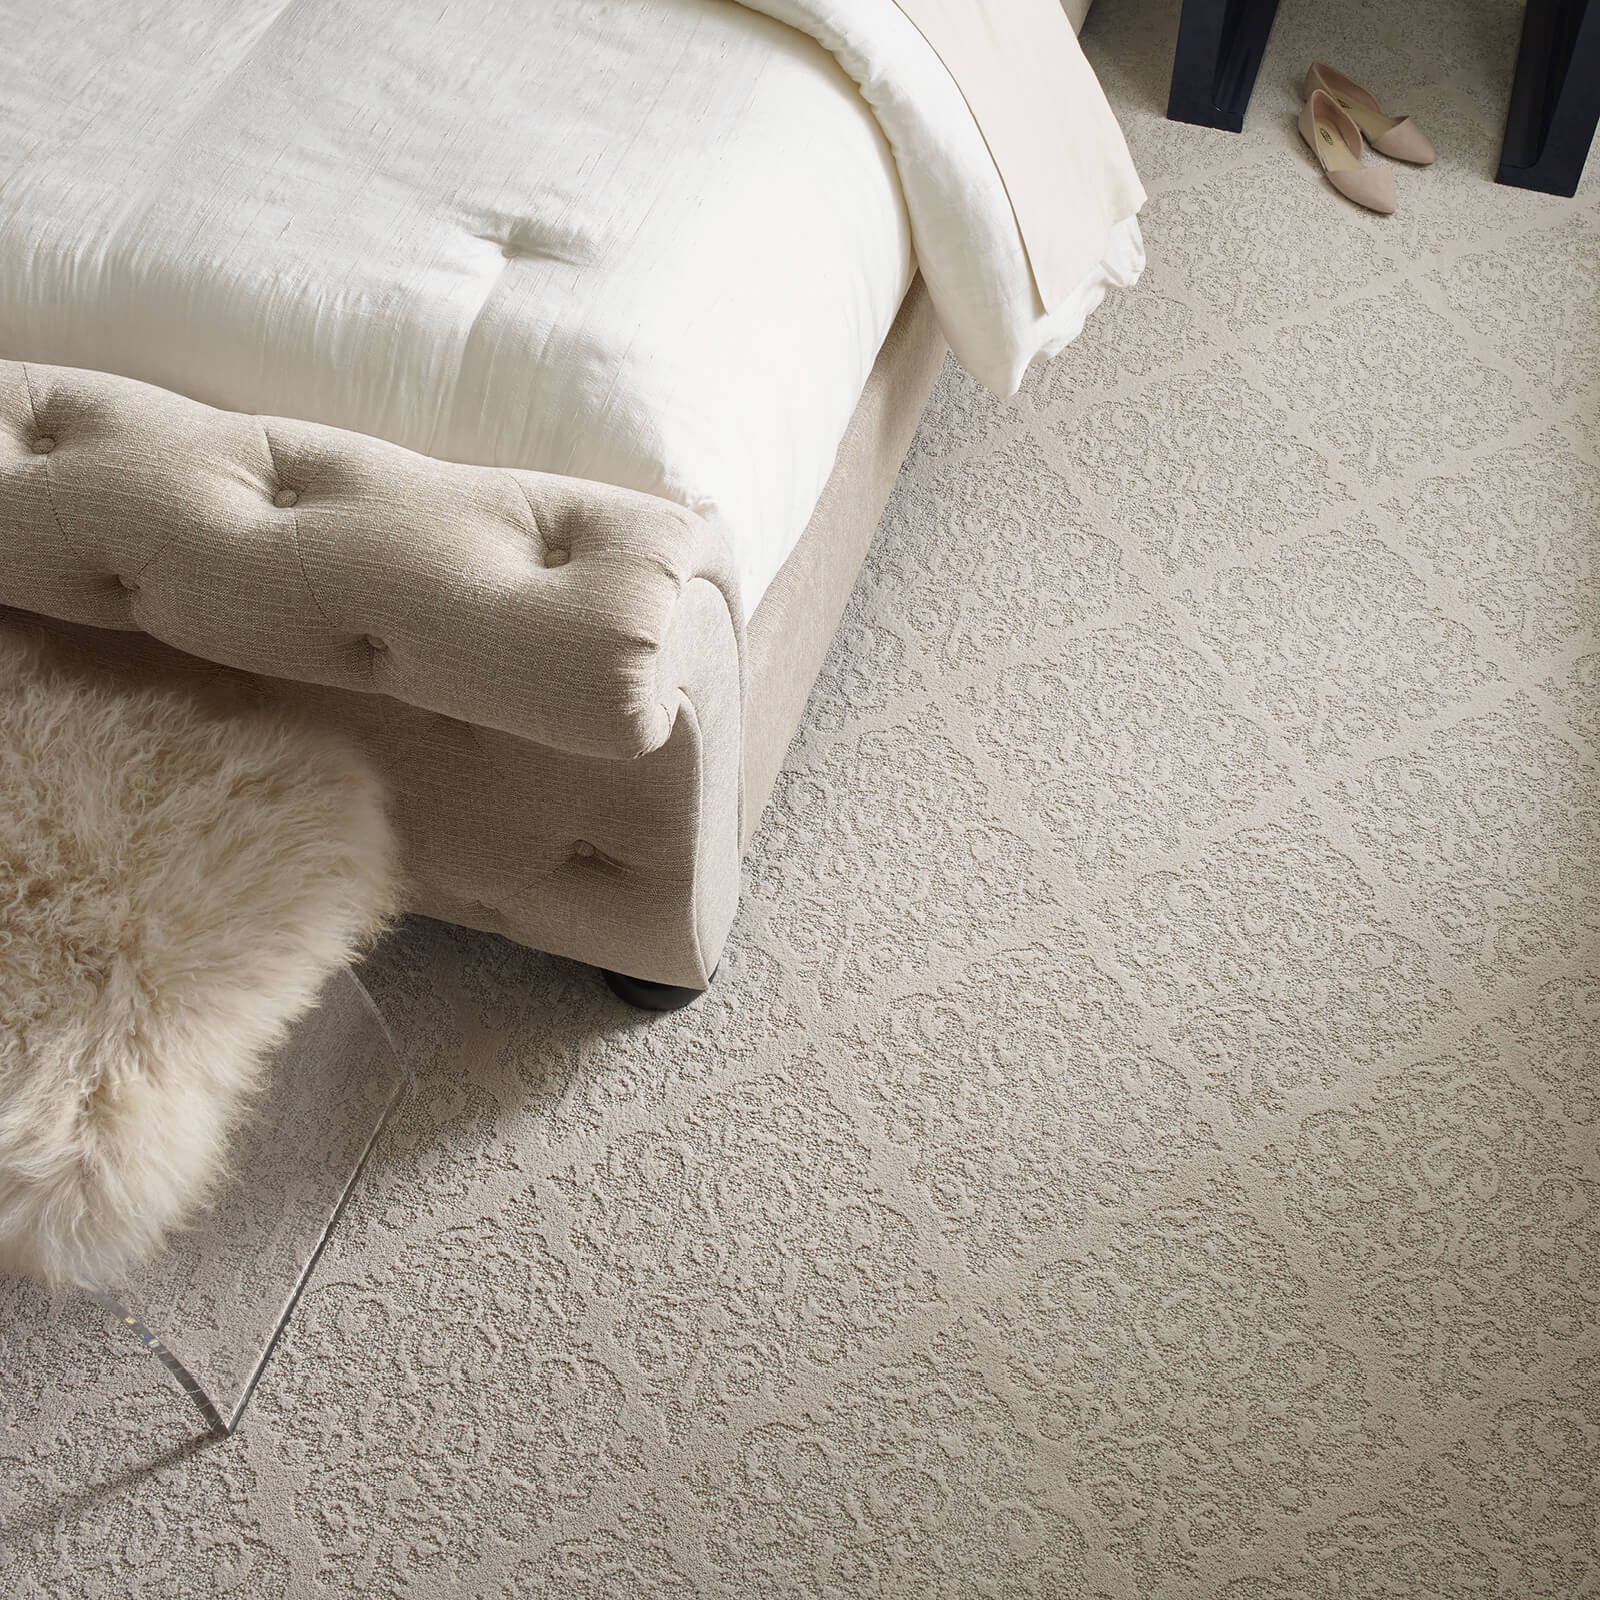 Carpet design | All Floors Design Centre